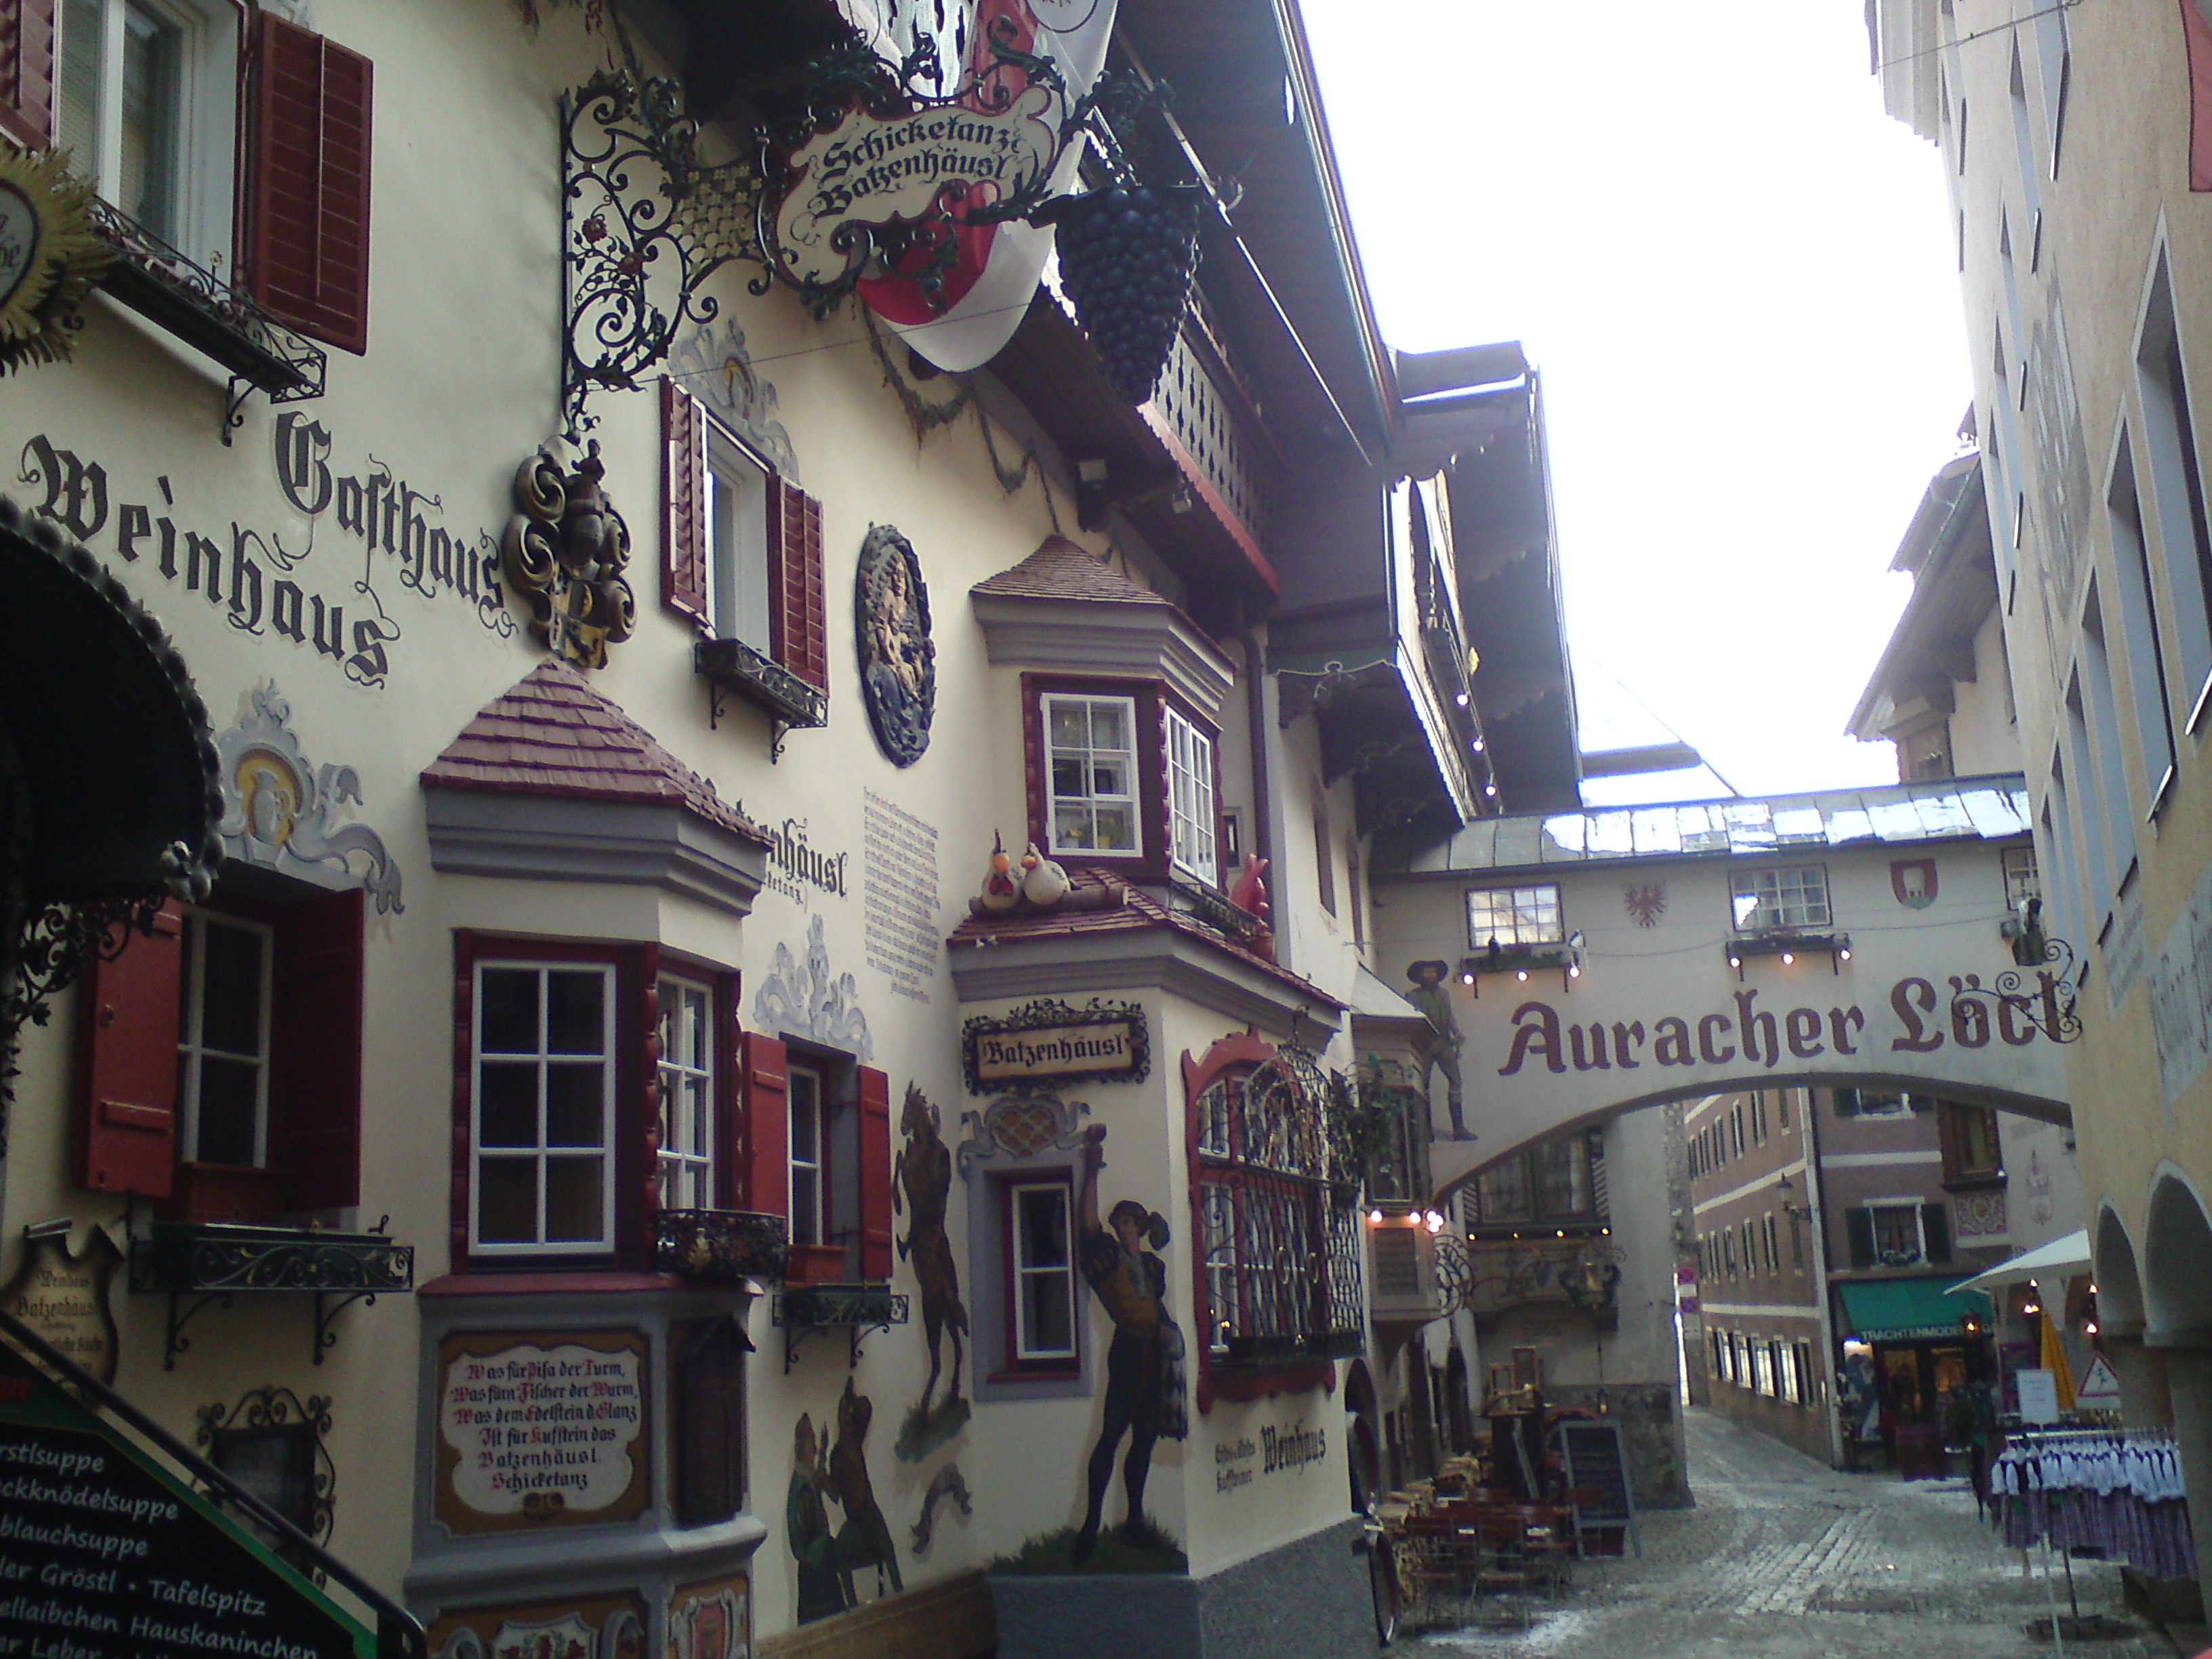 Hotel Andreas Hofer Luttach